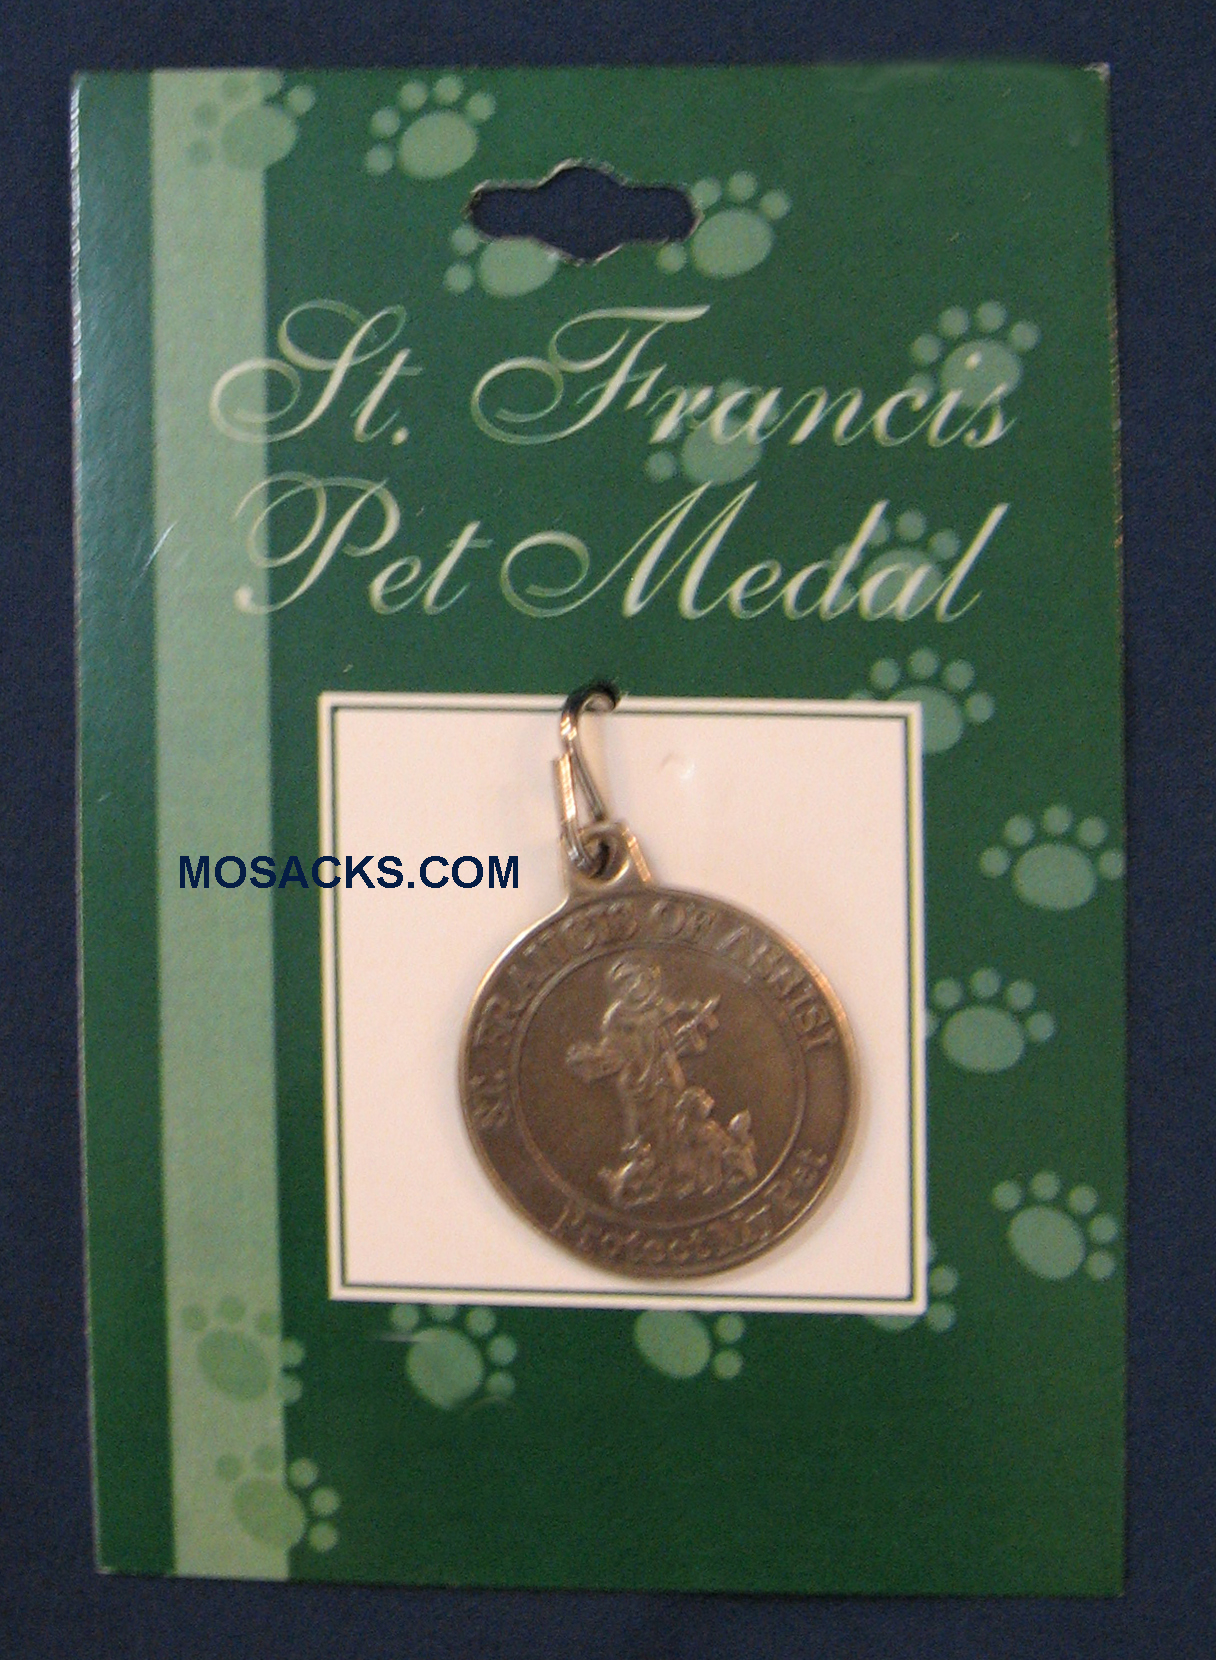 St. Francis Pet Collar Medal 17168